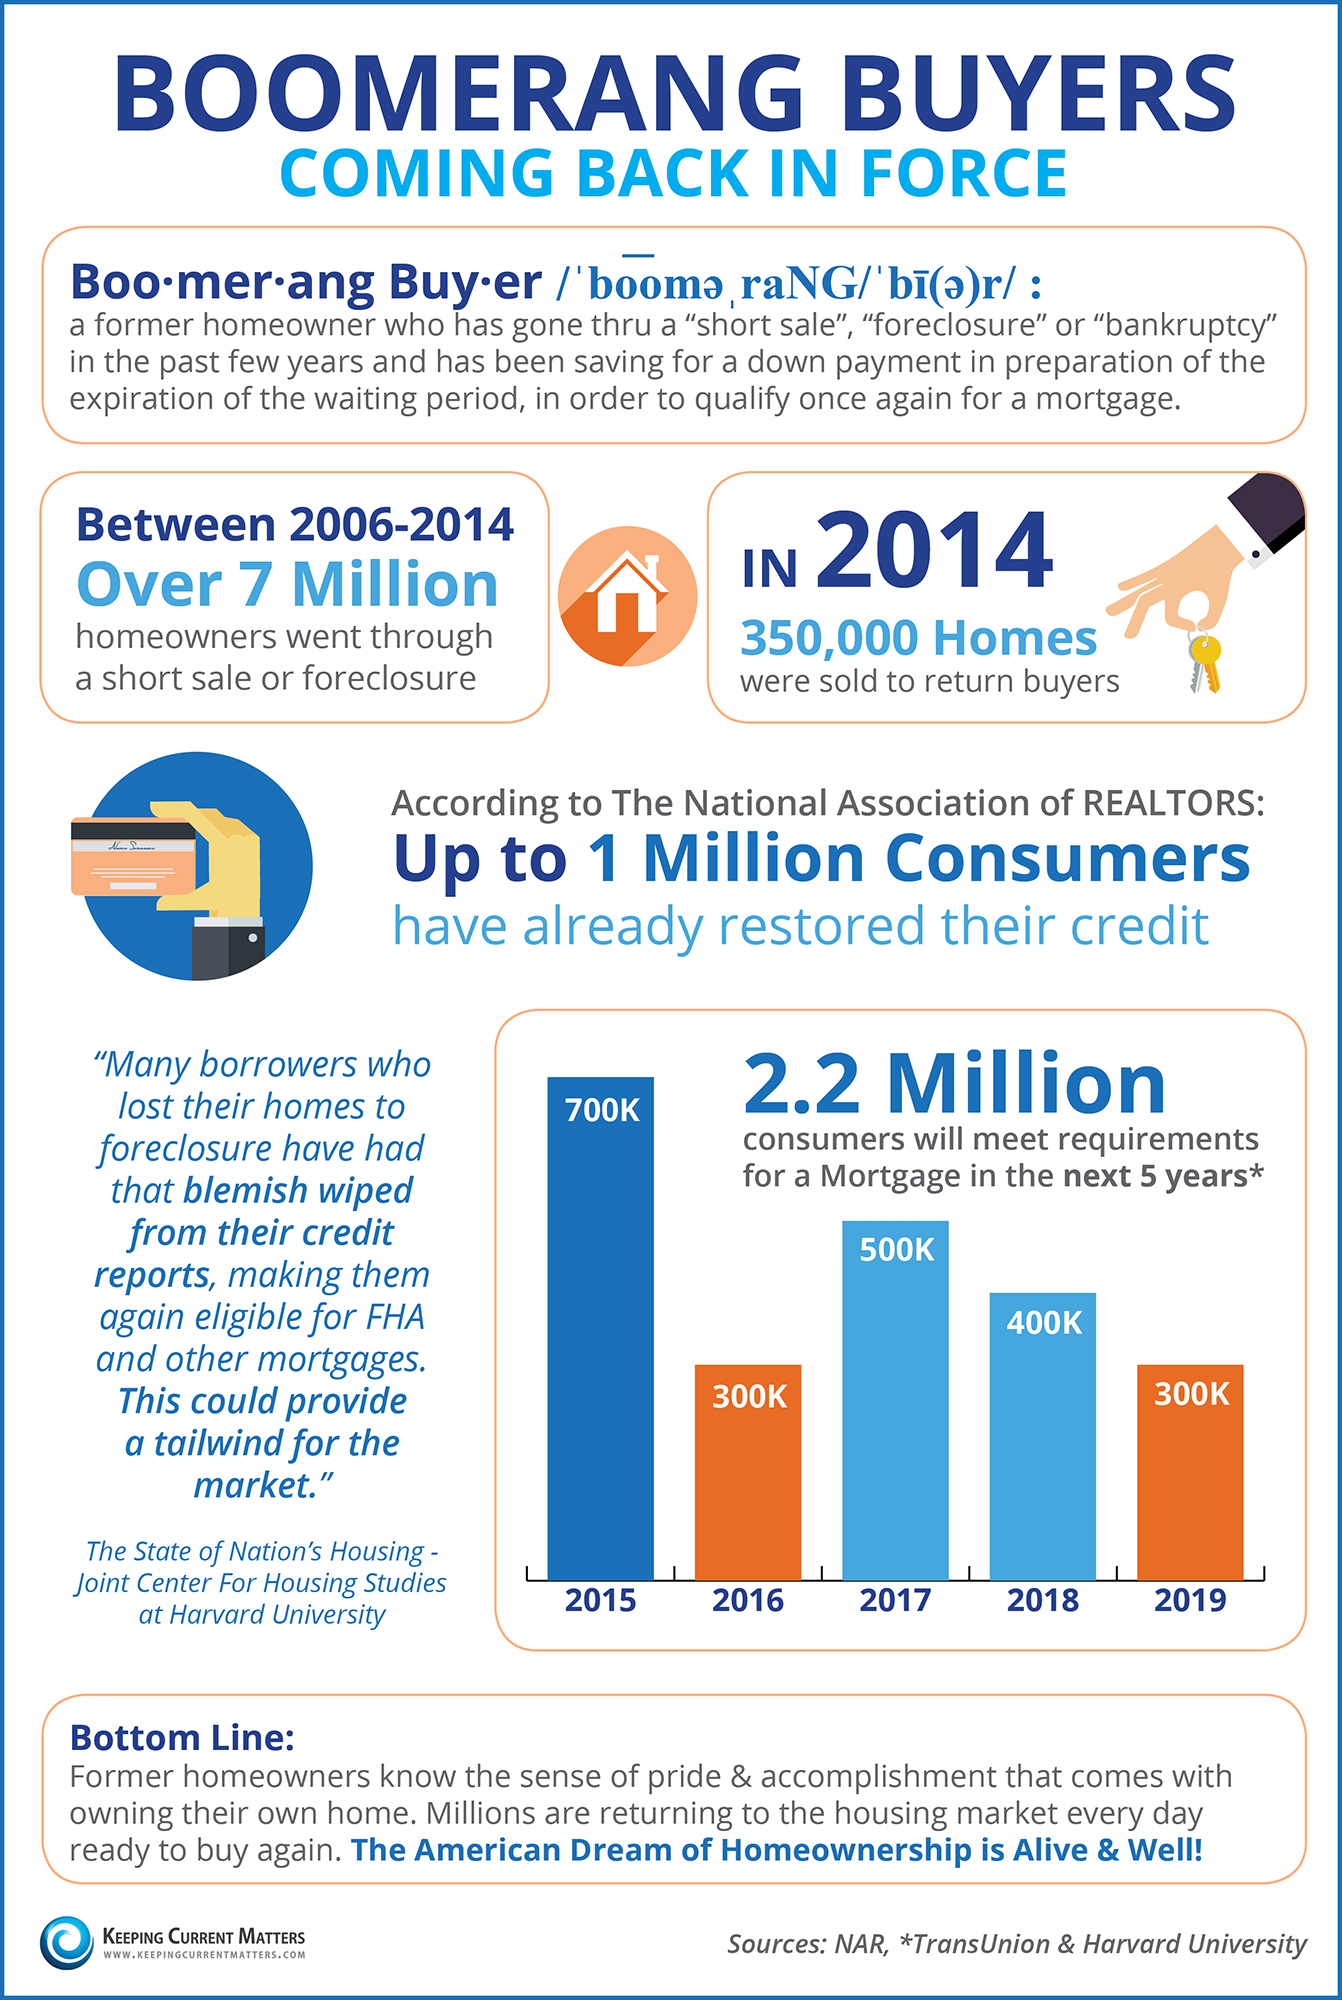 Boomerang Buyers Coming Back in Force [INFOGRAPHIC] | Keeping Current Matters